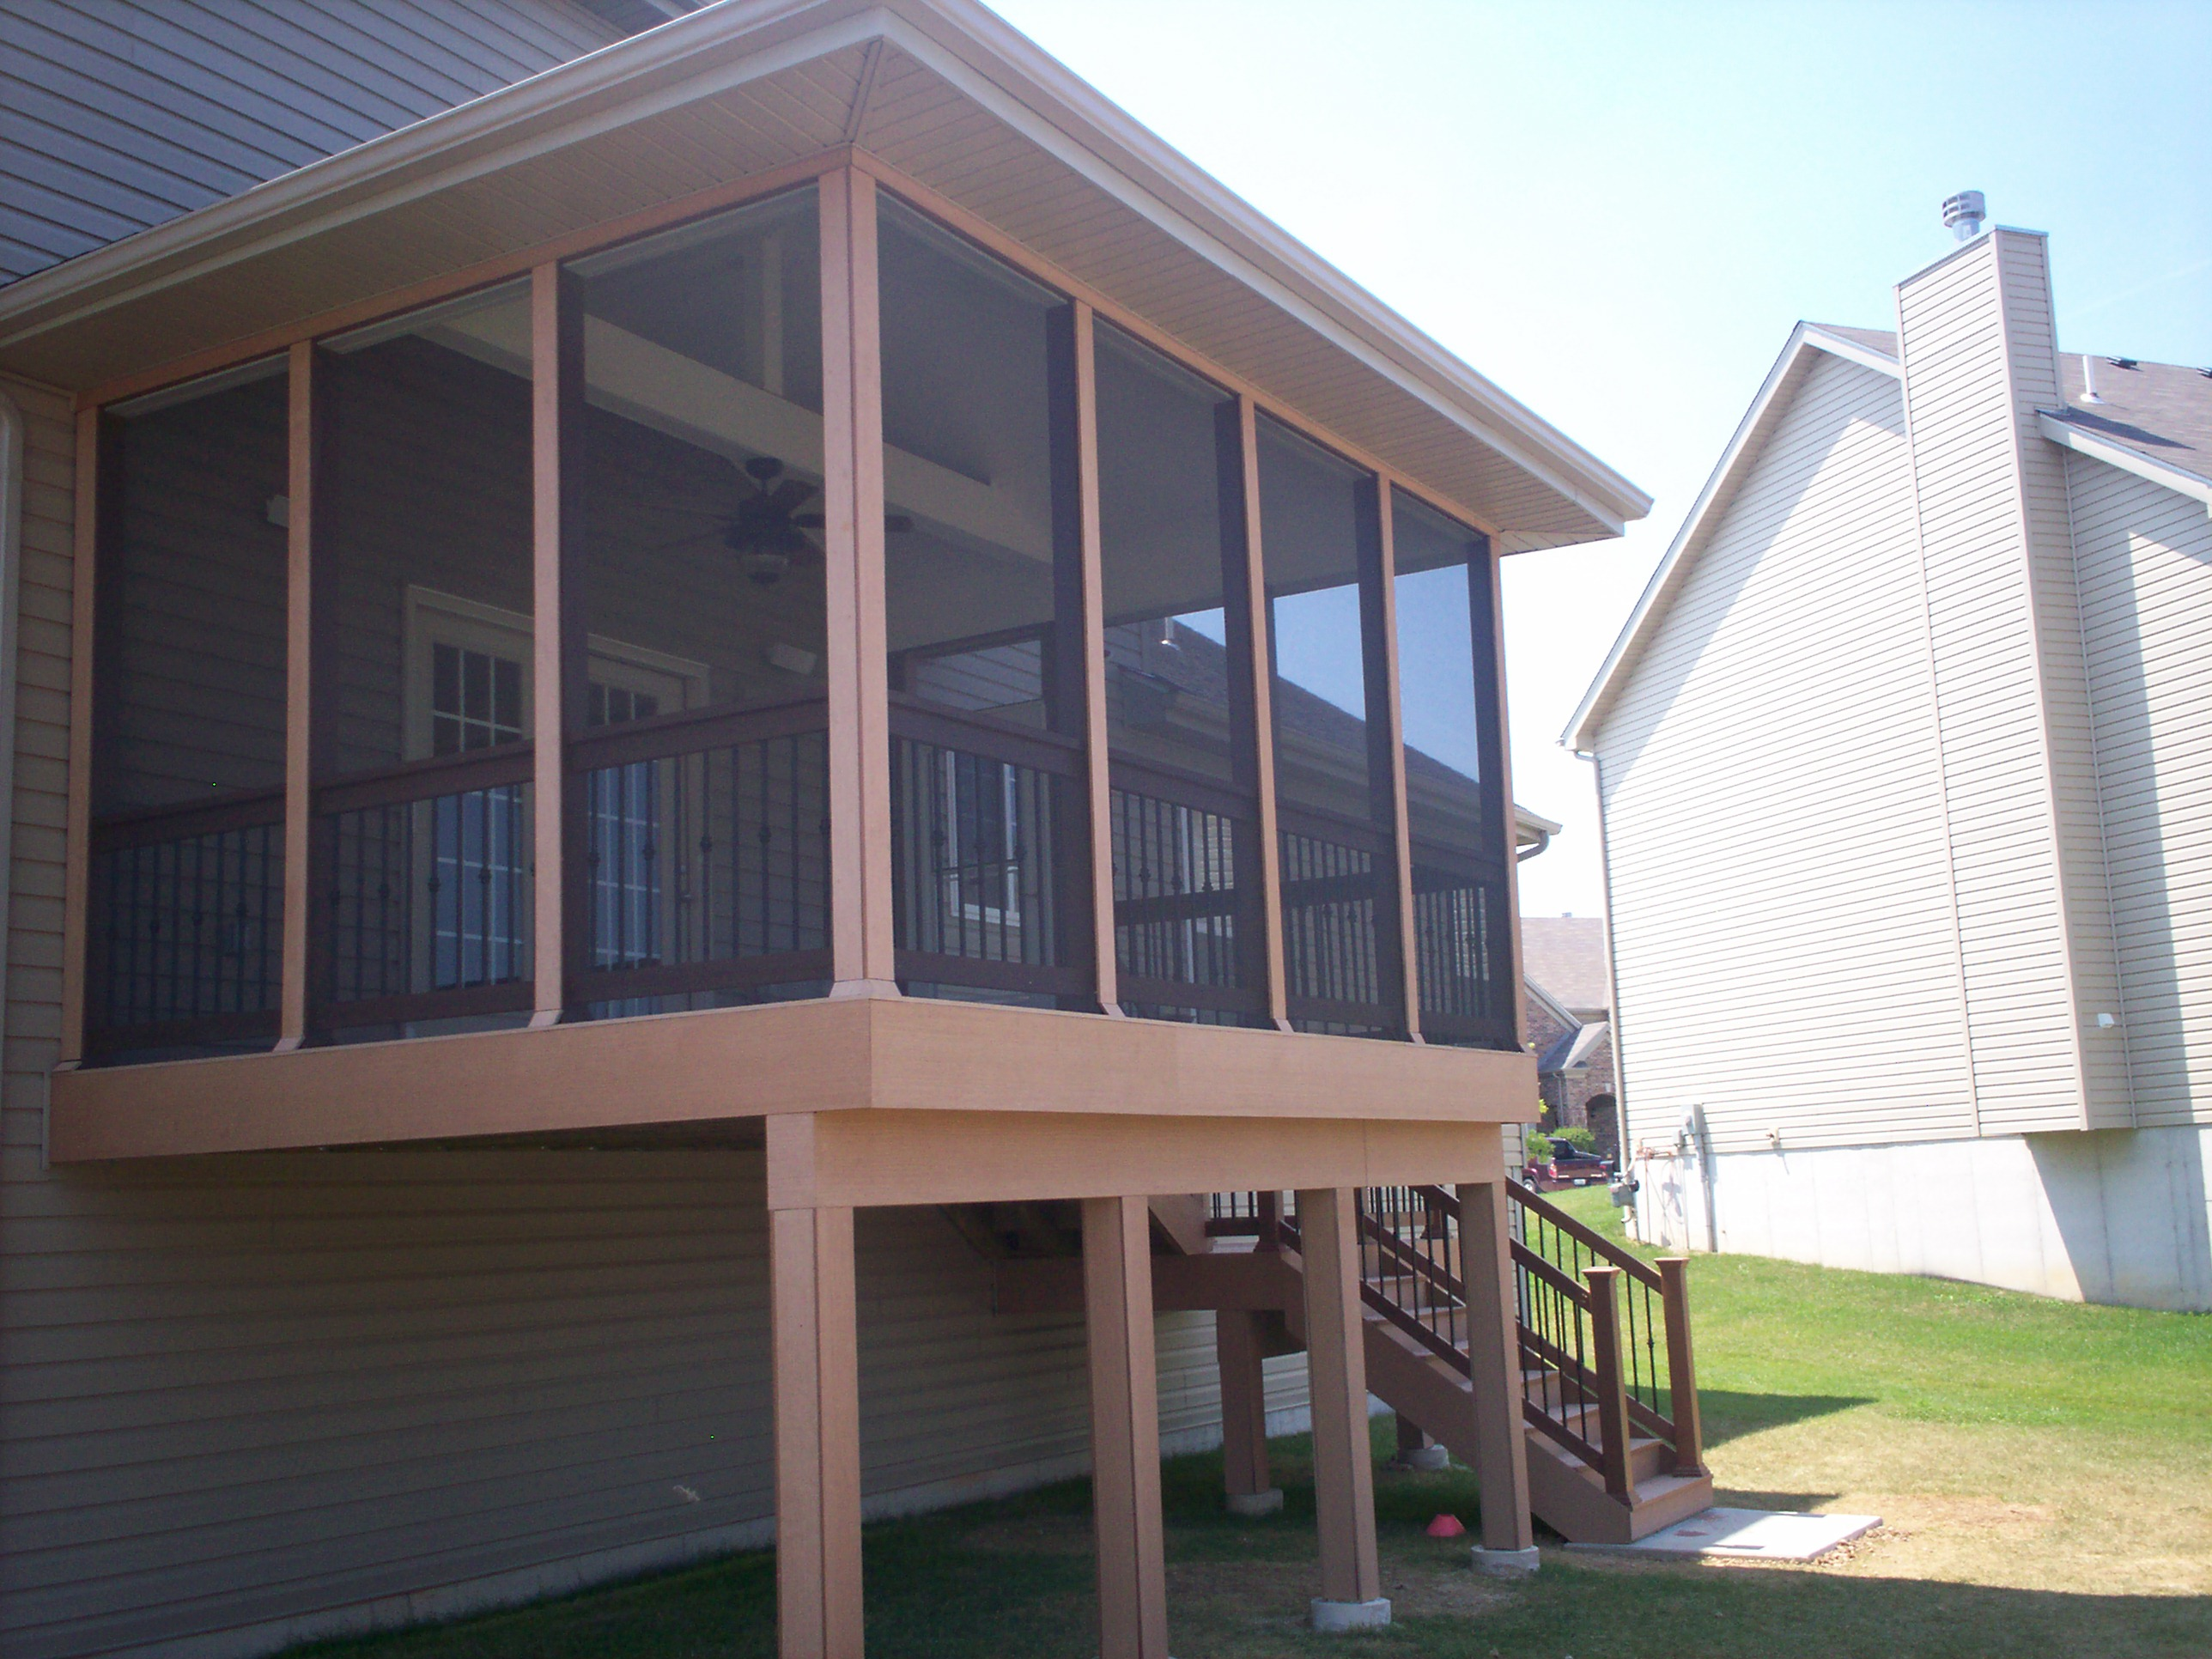 Screened In Decks : Deck designs with a screened porch st louis decks